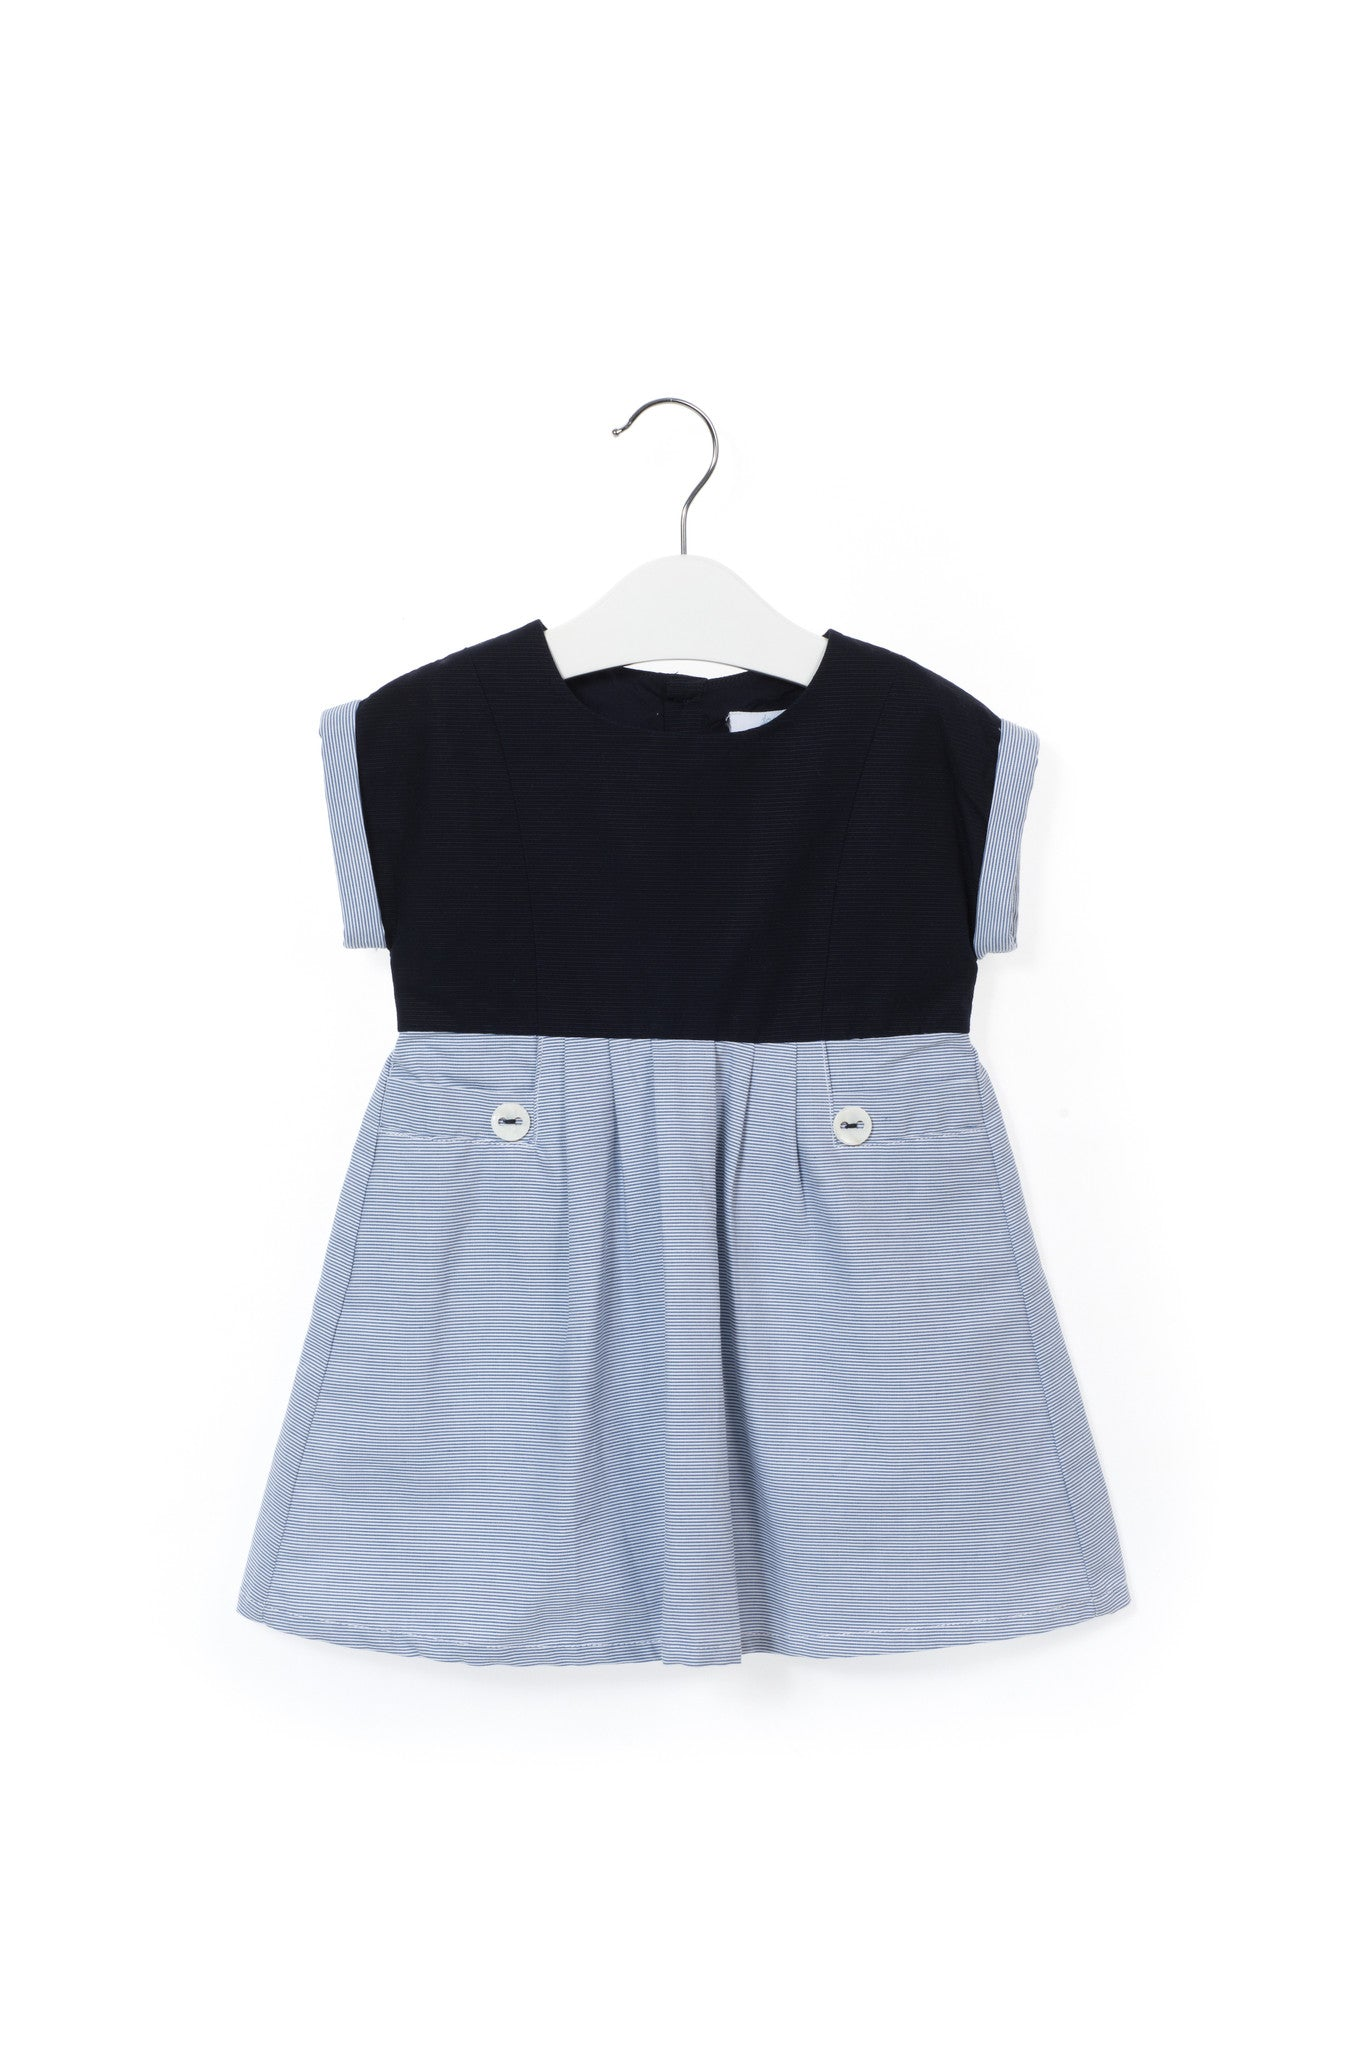 10001153 Jacadi Baby~Dress 12-18M at Retykle